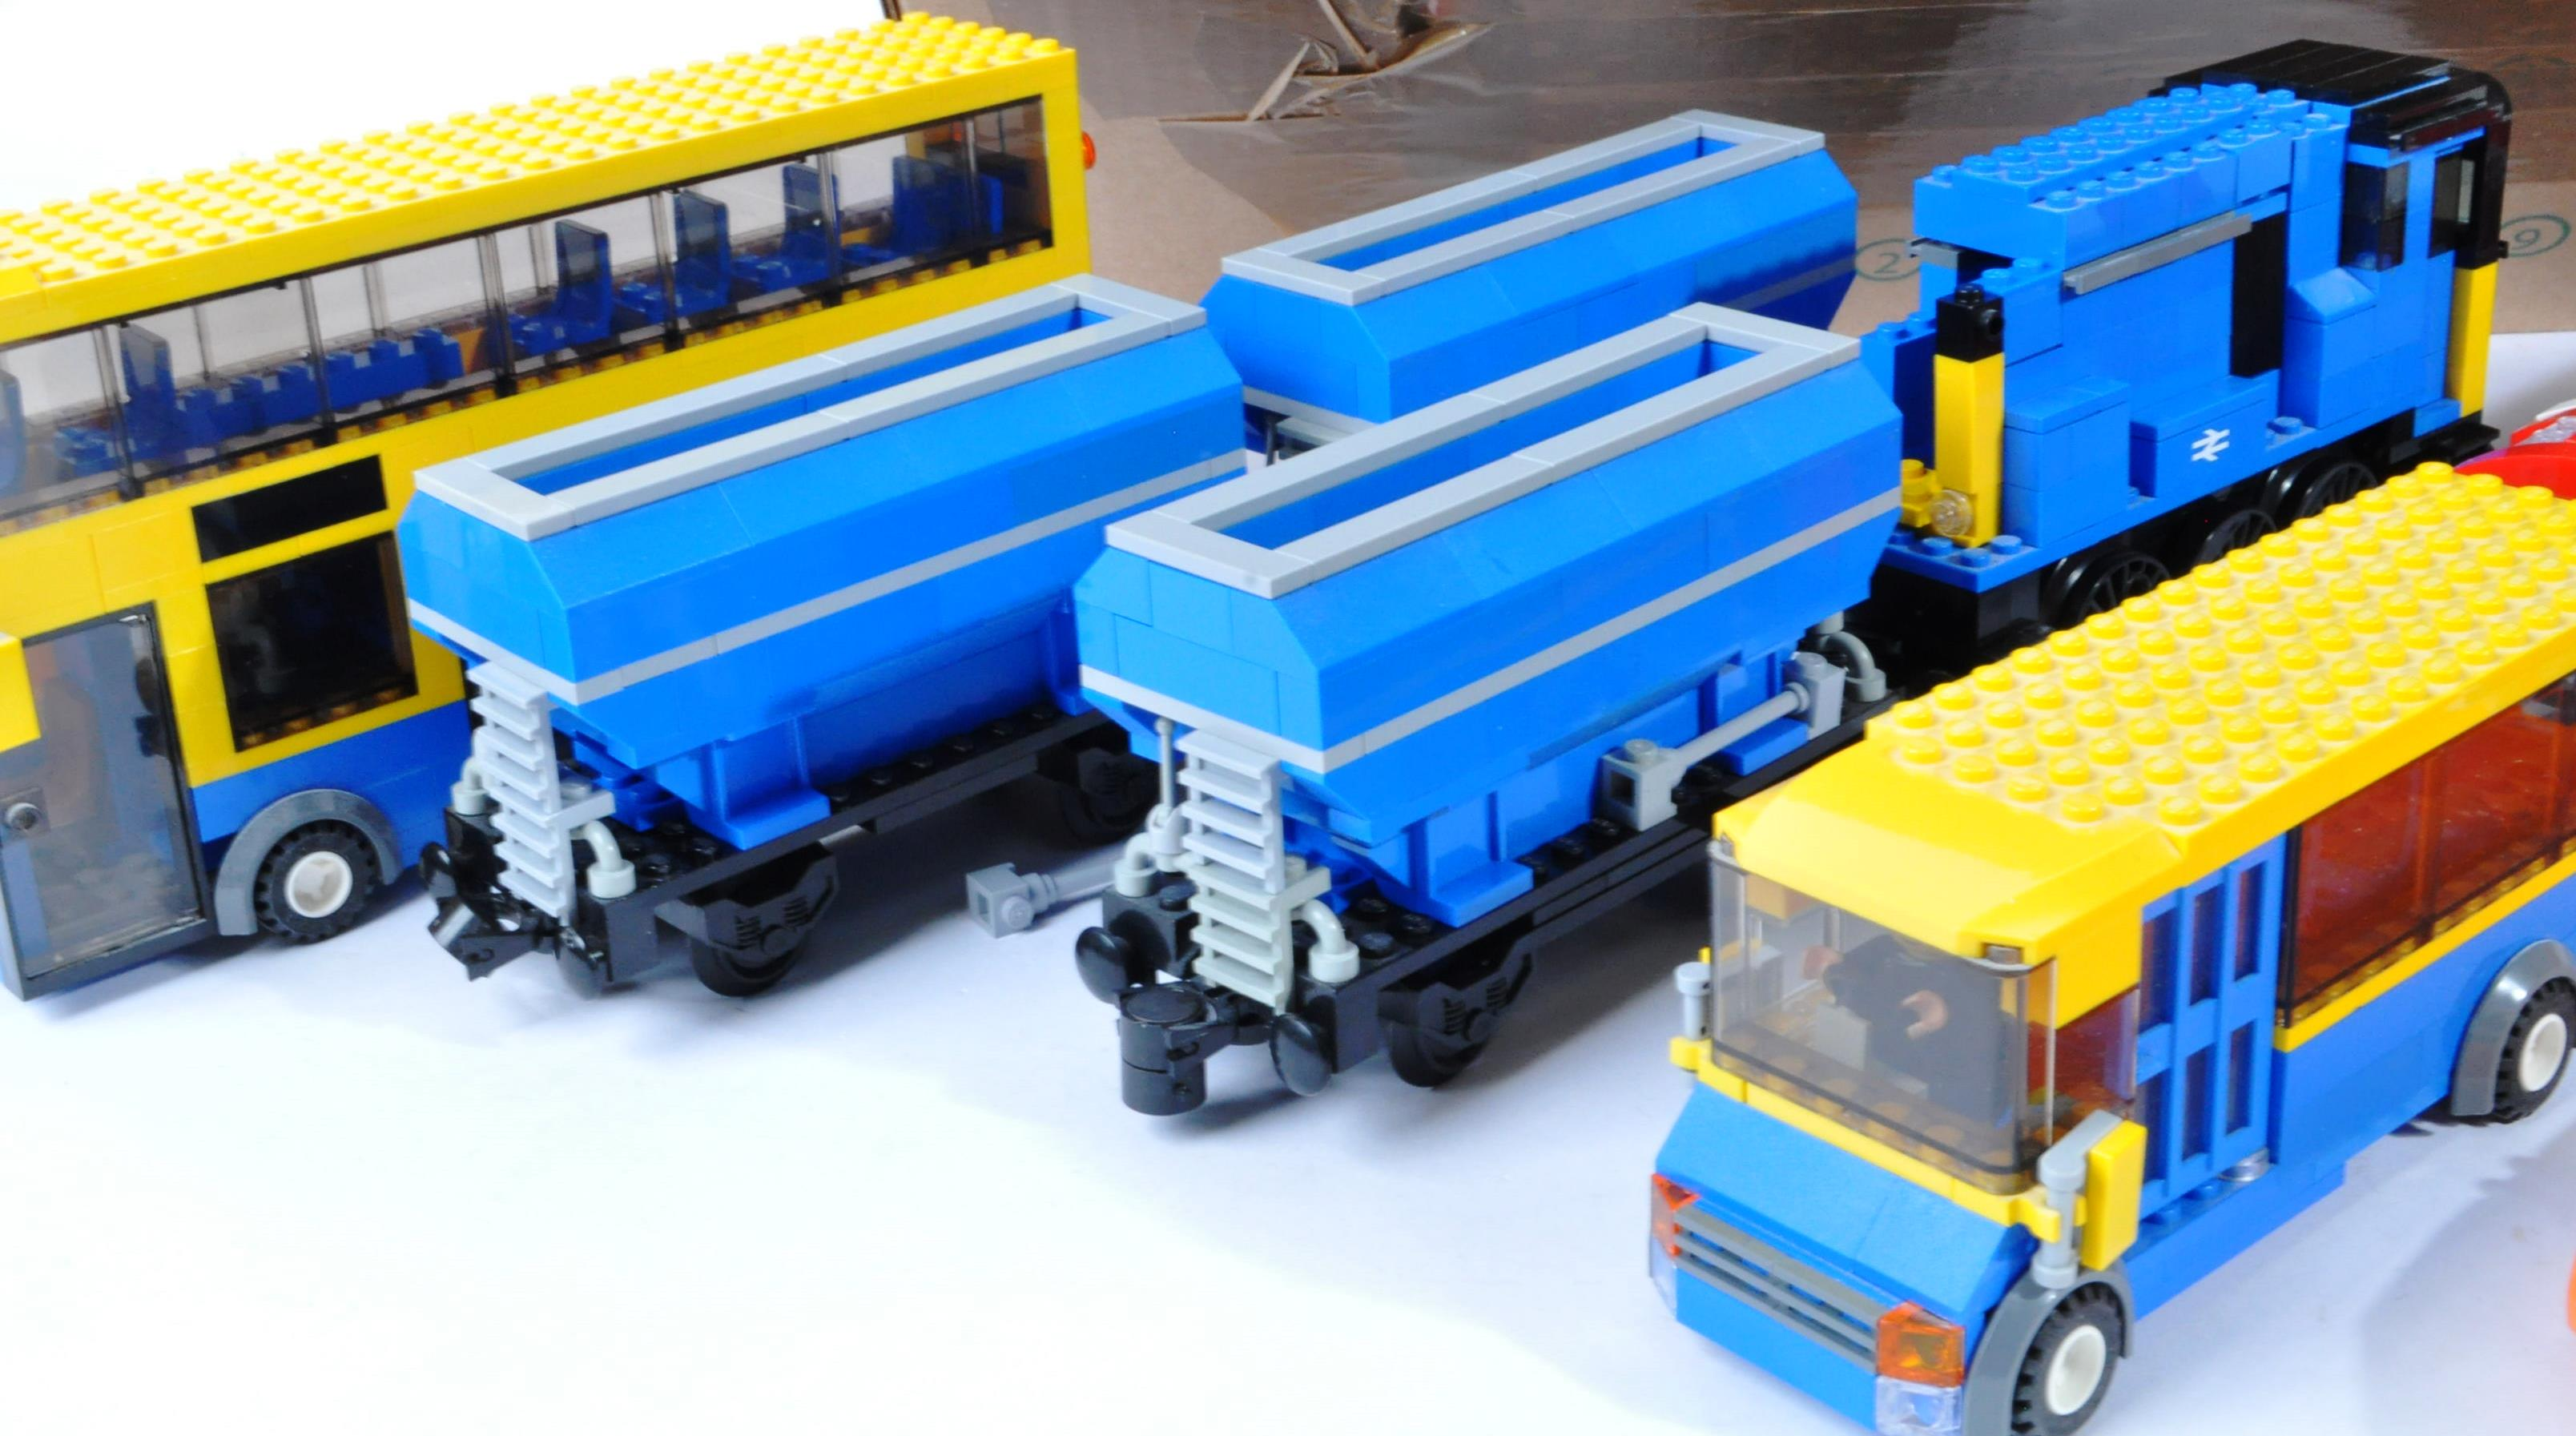 LARGE COLLECTION OF ASSORTED LOOSE LEGO BRICKS - Image 2 of 6